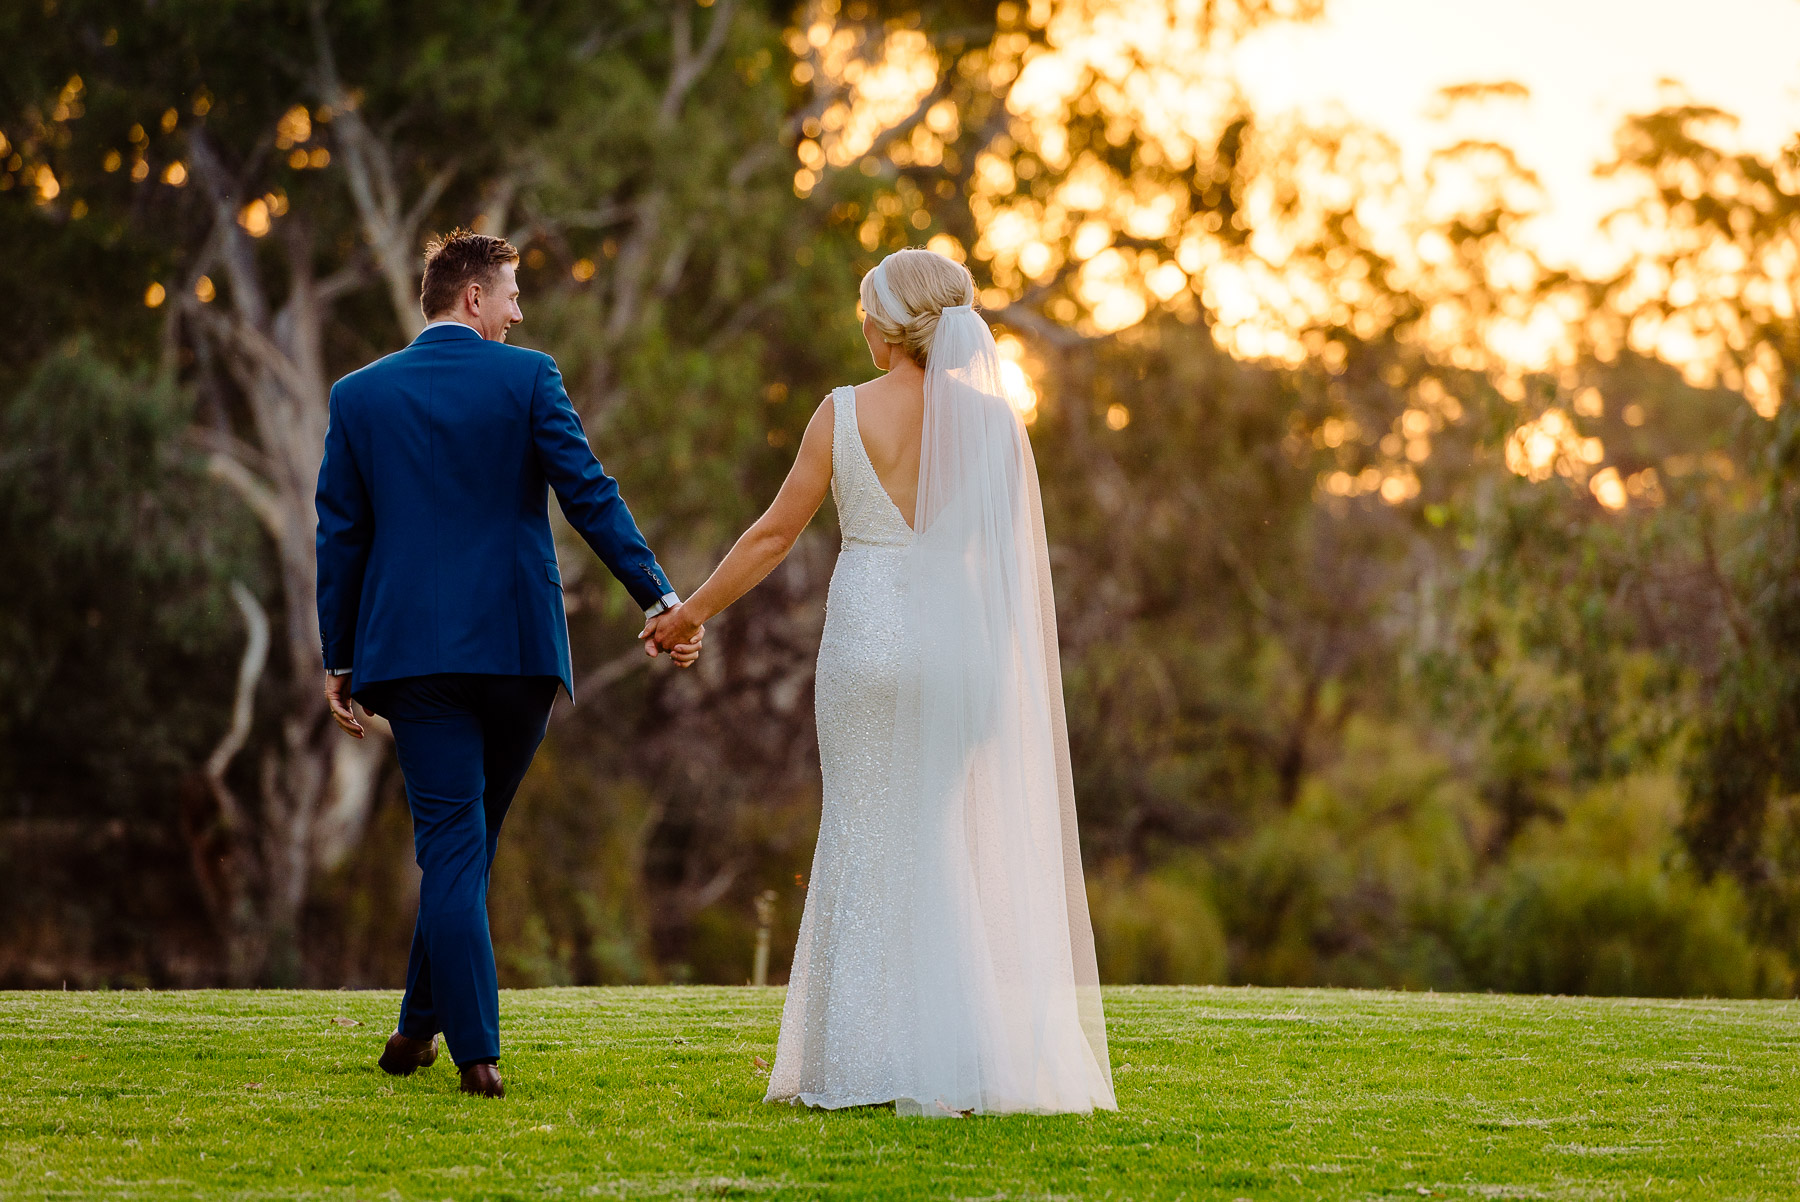 Justin_and_Jim_Best_Of_Wedding_Photography-64.jpg